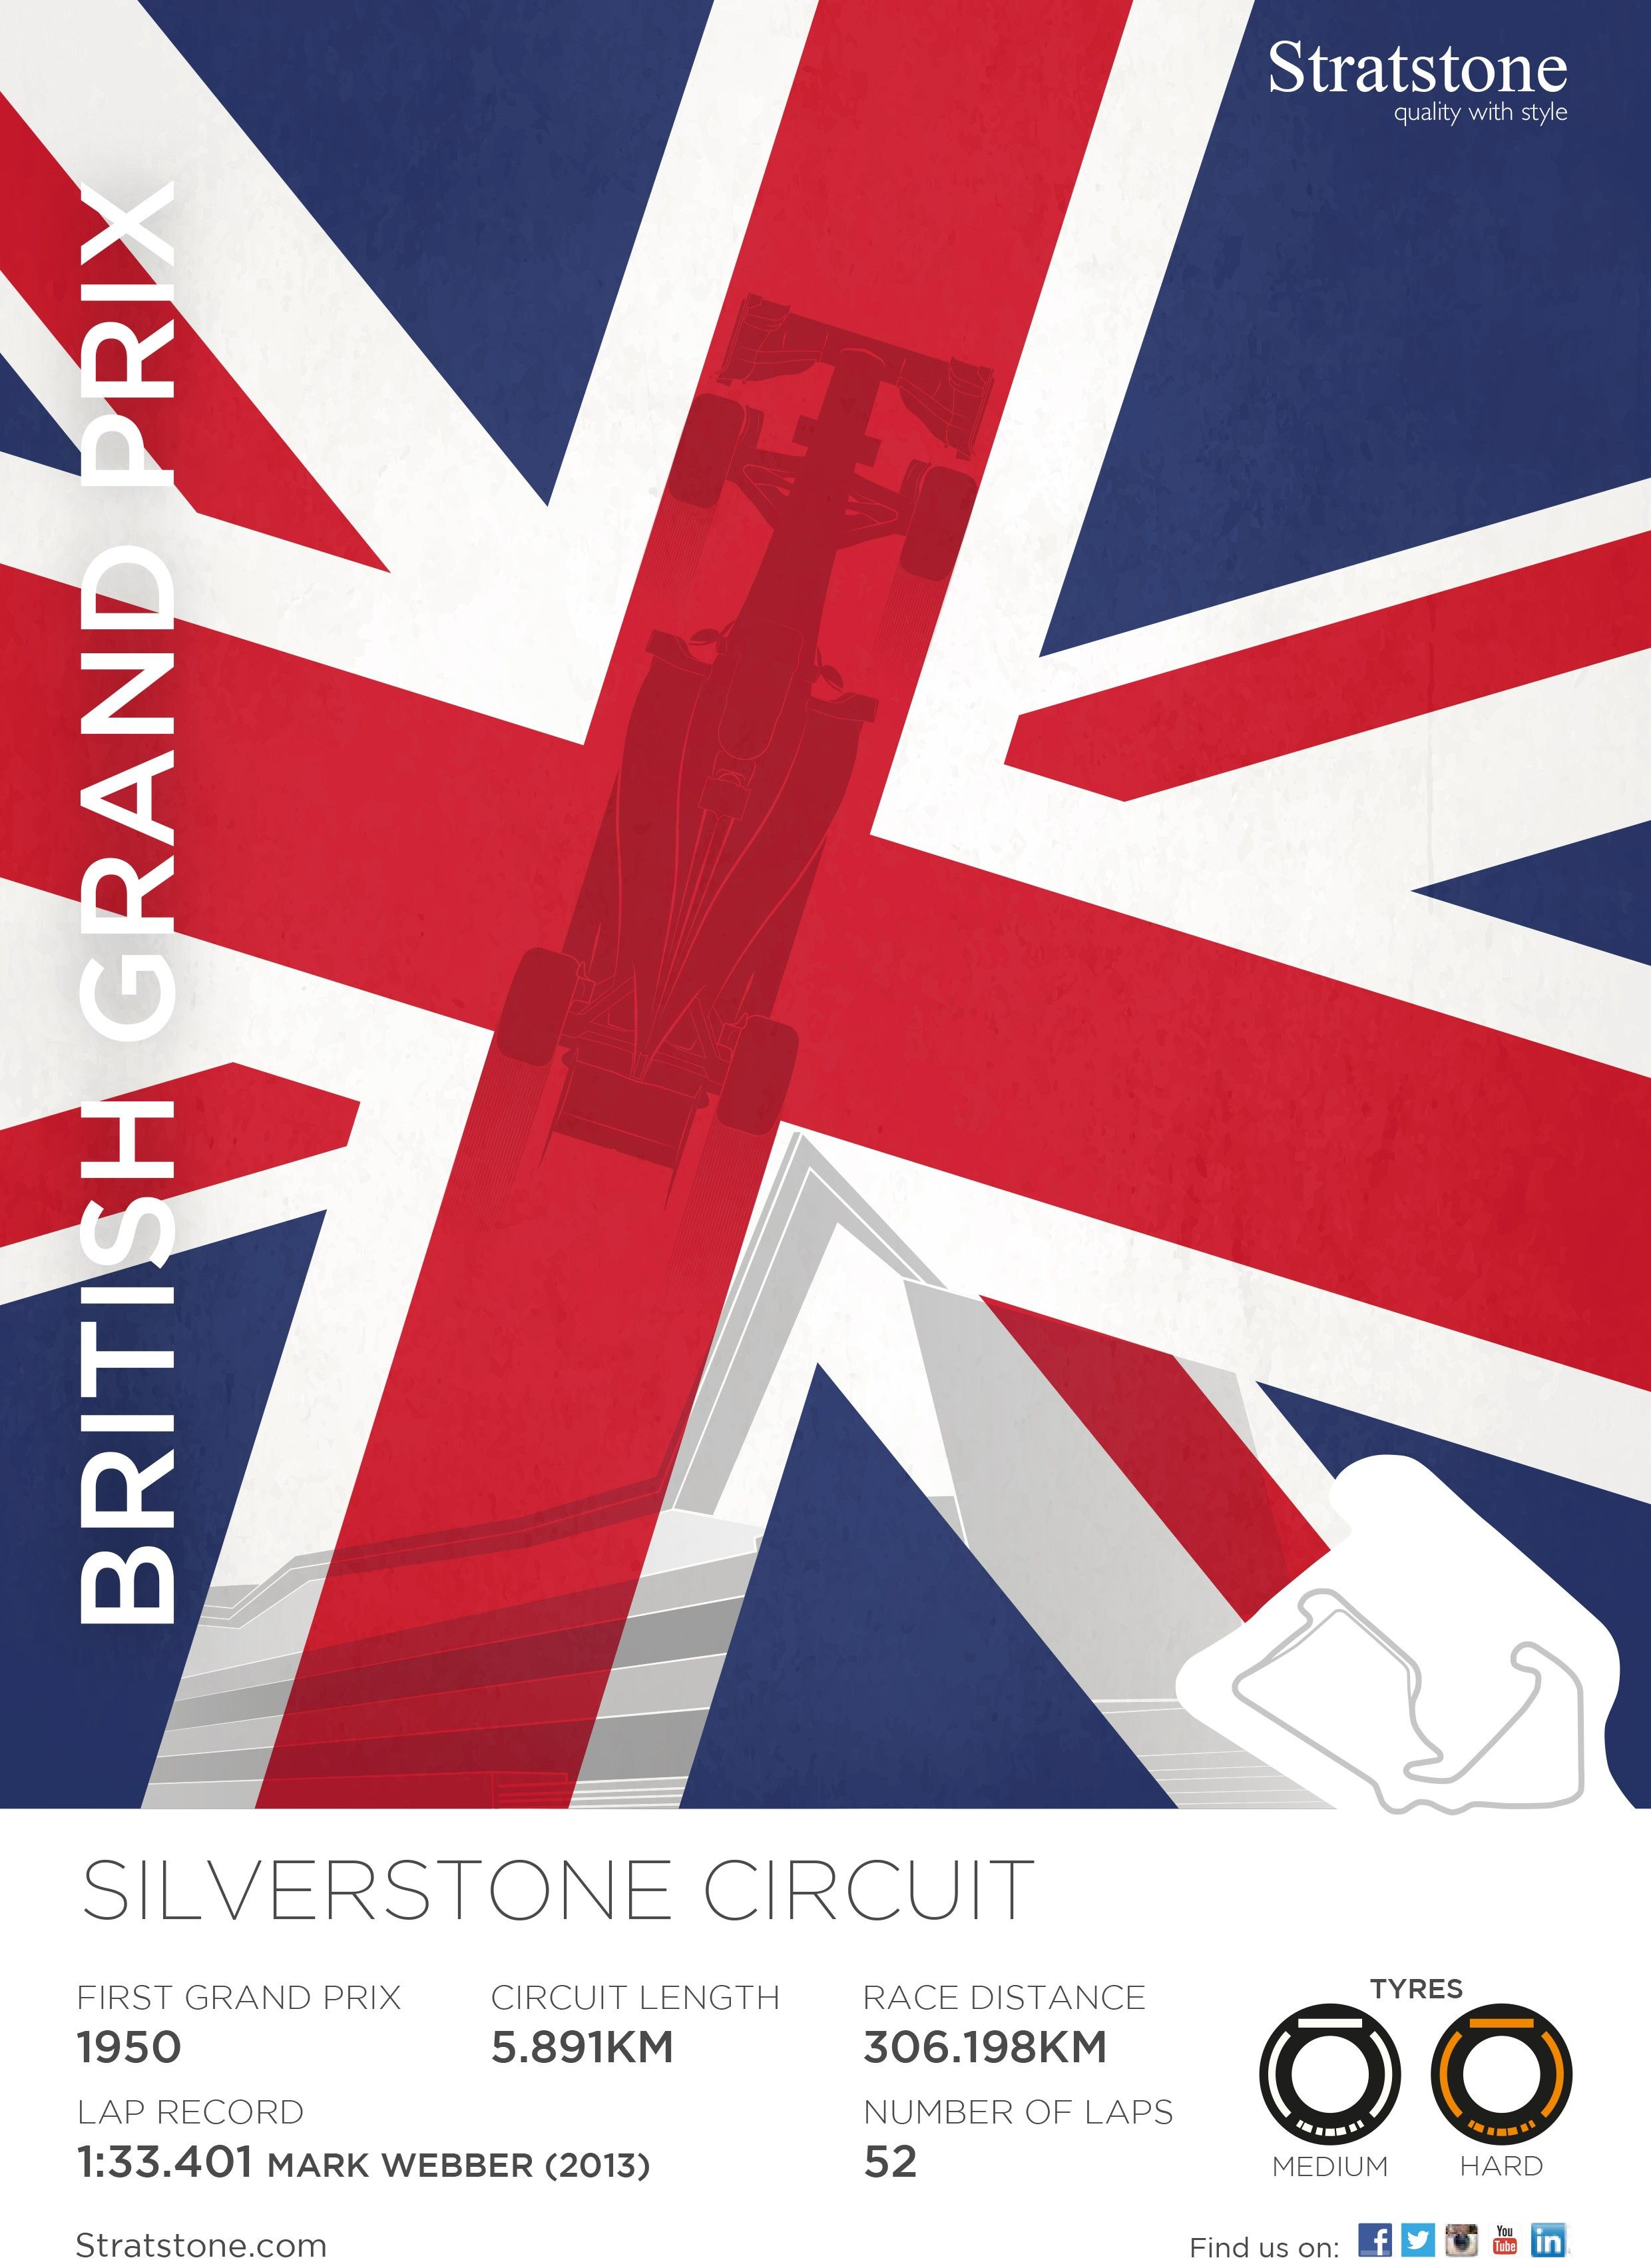 Facts for the Silverstone Circuit in Towcester, Northamptonshire ...